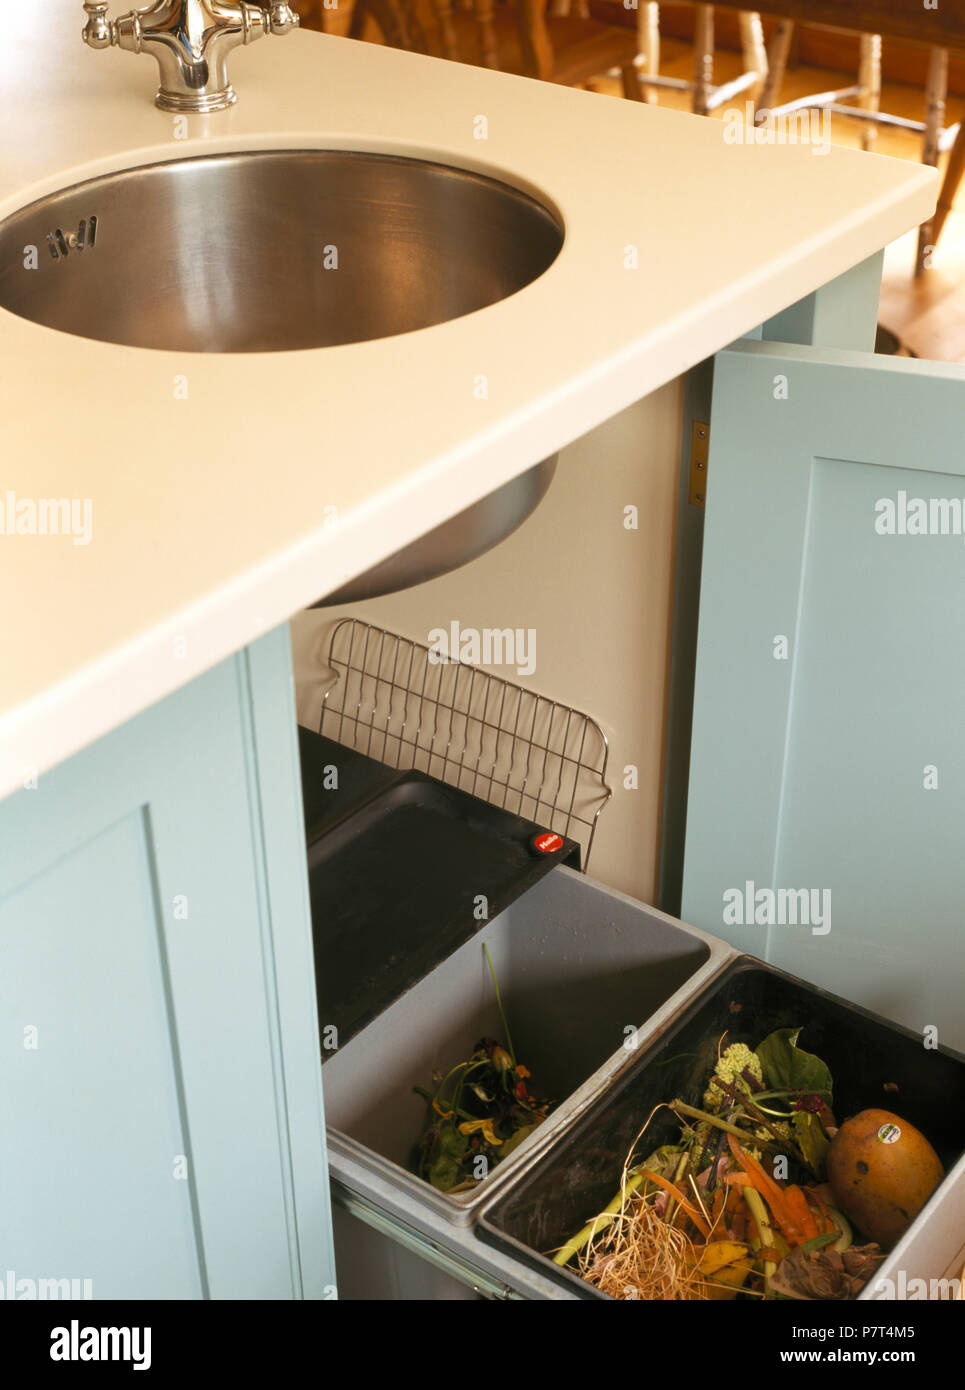 Circular stainless steel sink in kitchen unit with door open to show compost bins Stock Photo